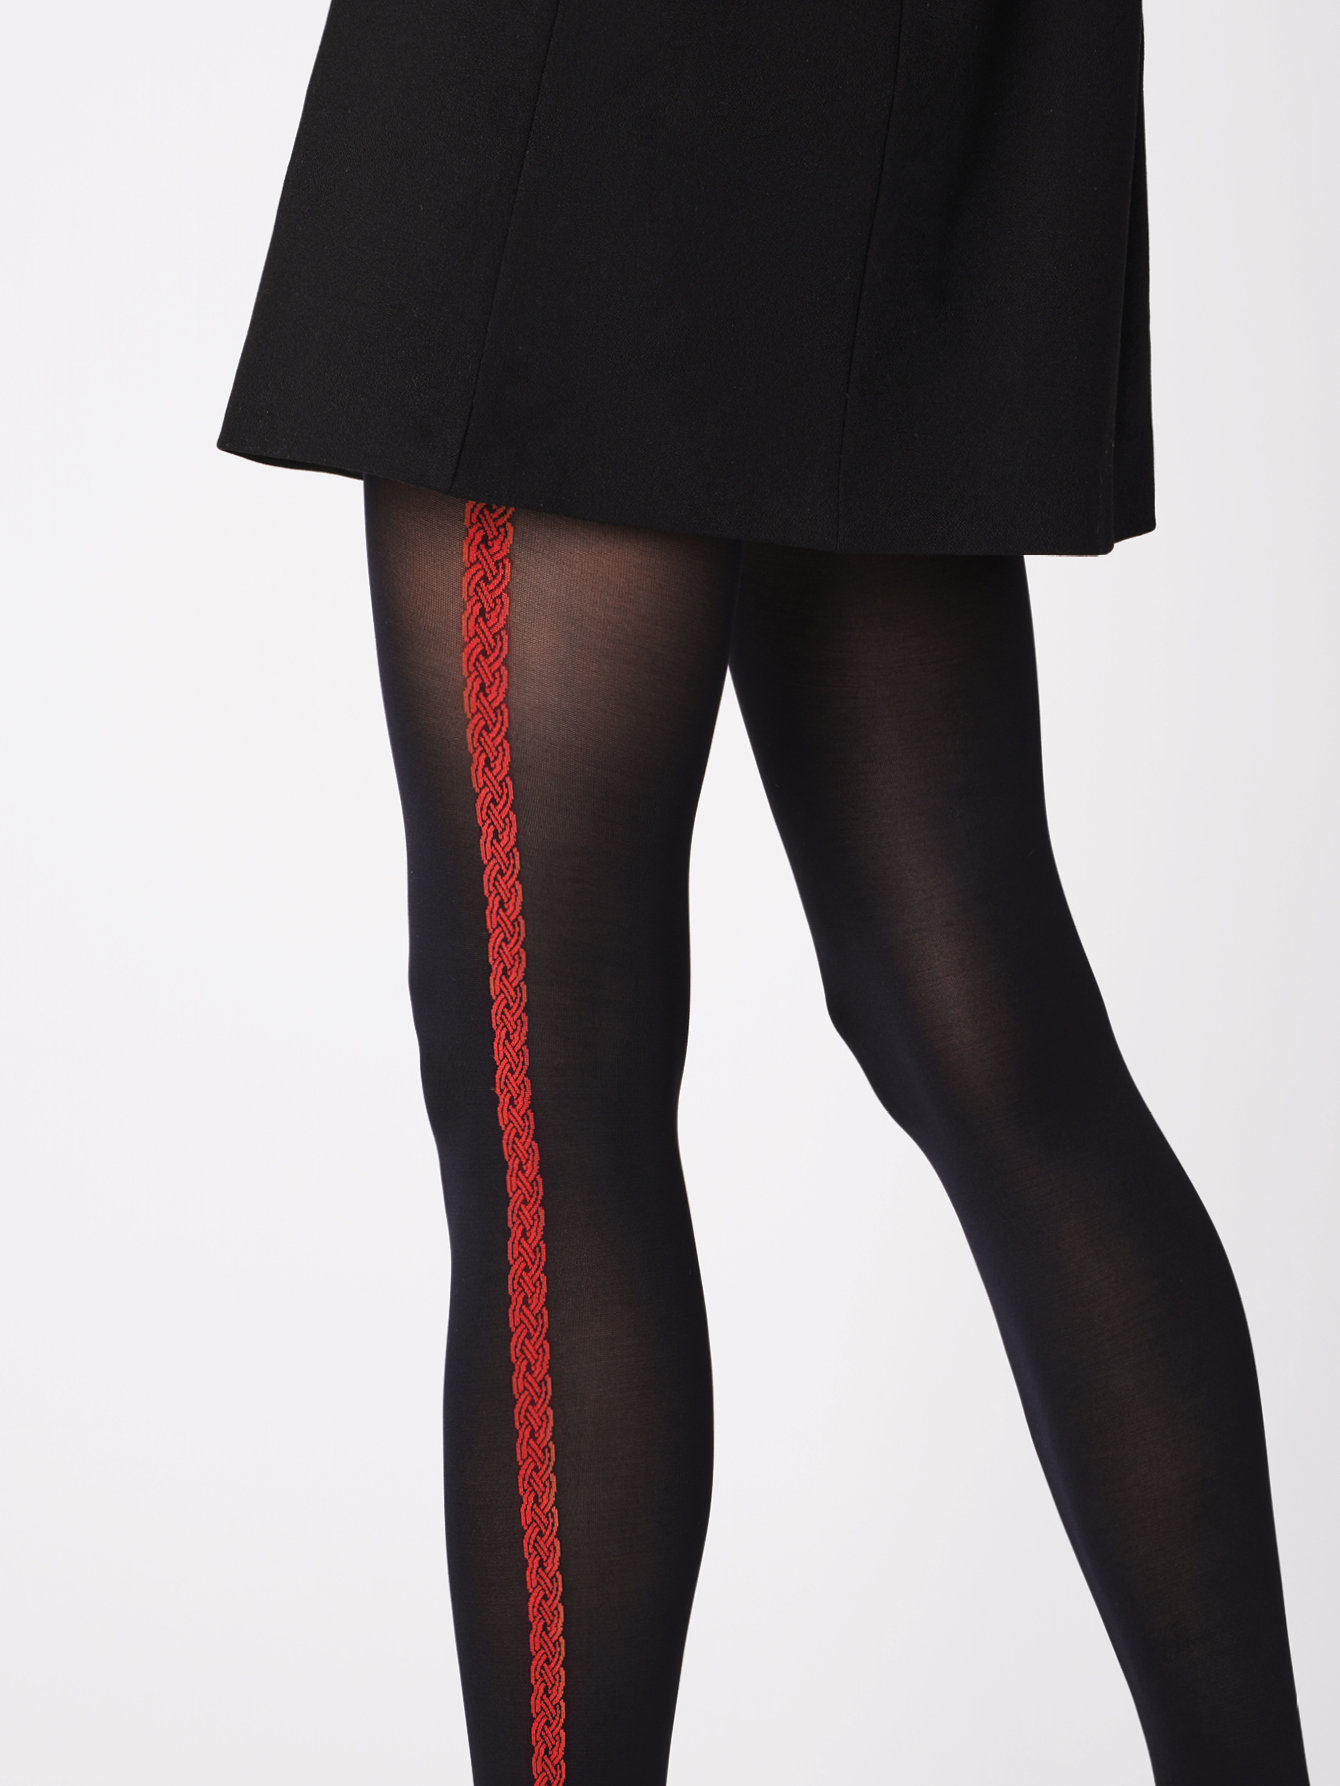 Fiore: Red Lipstick Side Striped Opaque Tights (2 Left!)